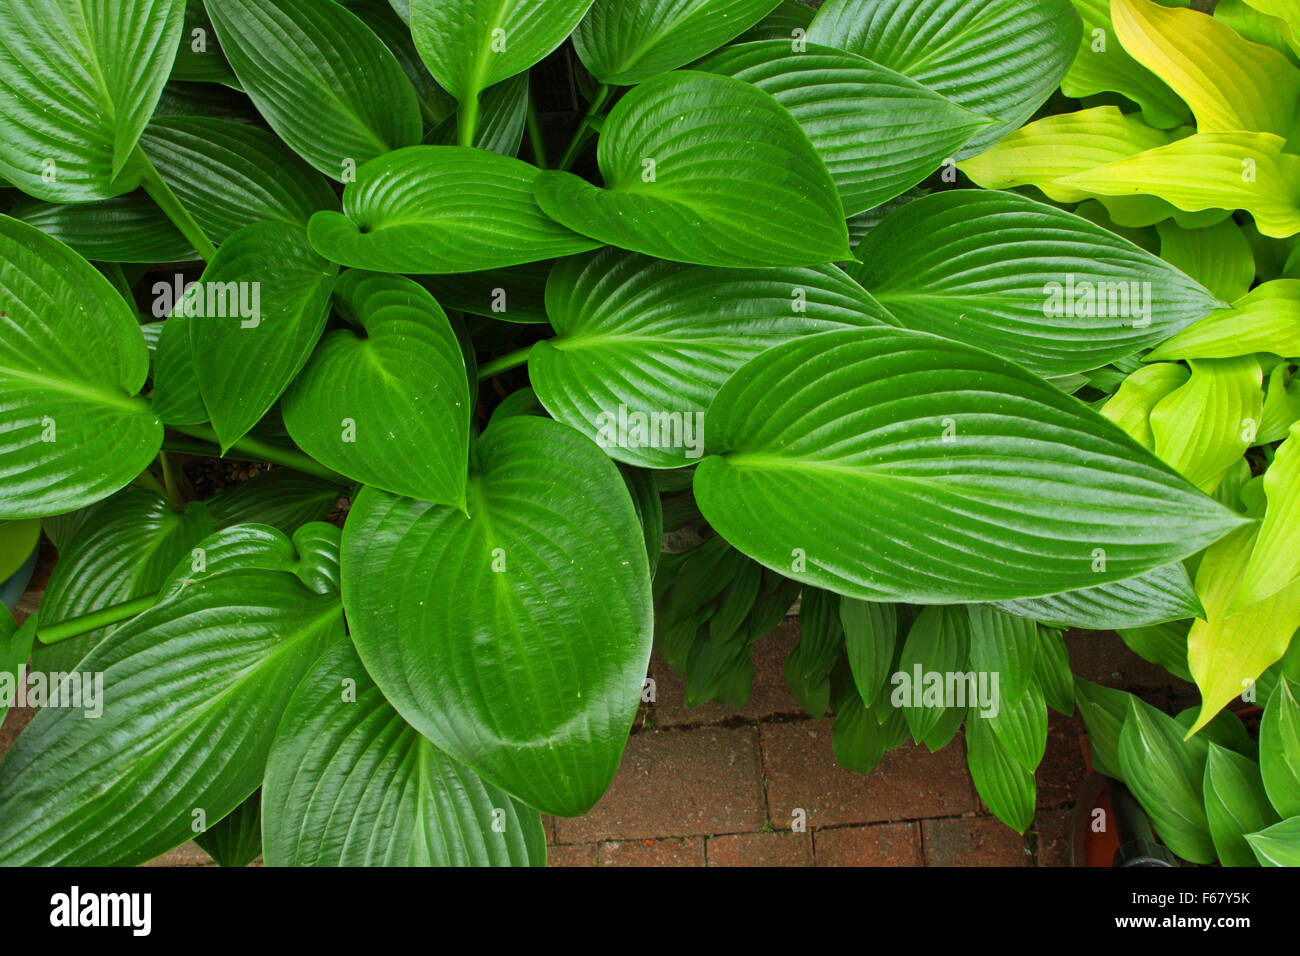 Beautiful rich green  leaves of a 'Devon Green' Hosta plant showing the fine ribbing of the leaves. - Stock Image